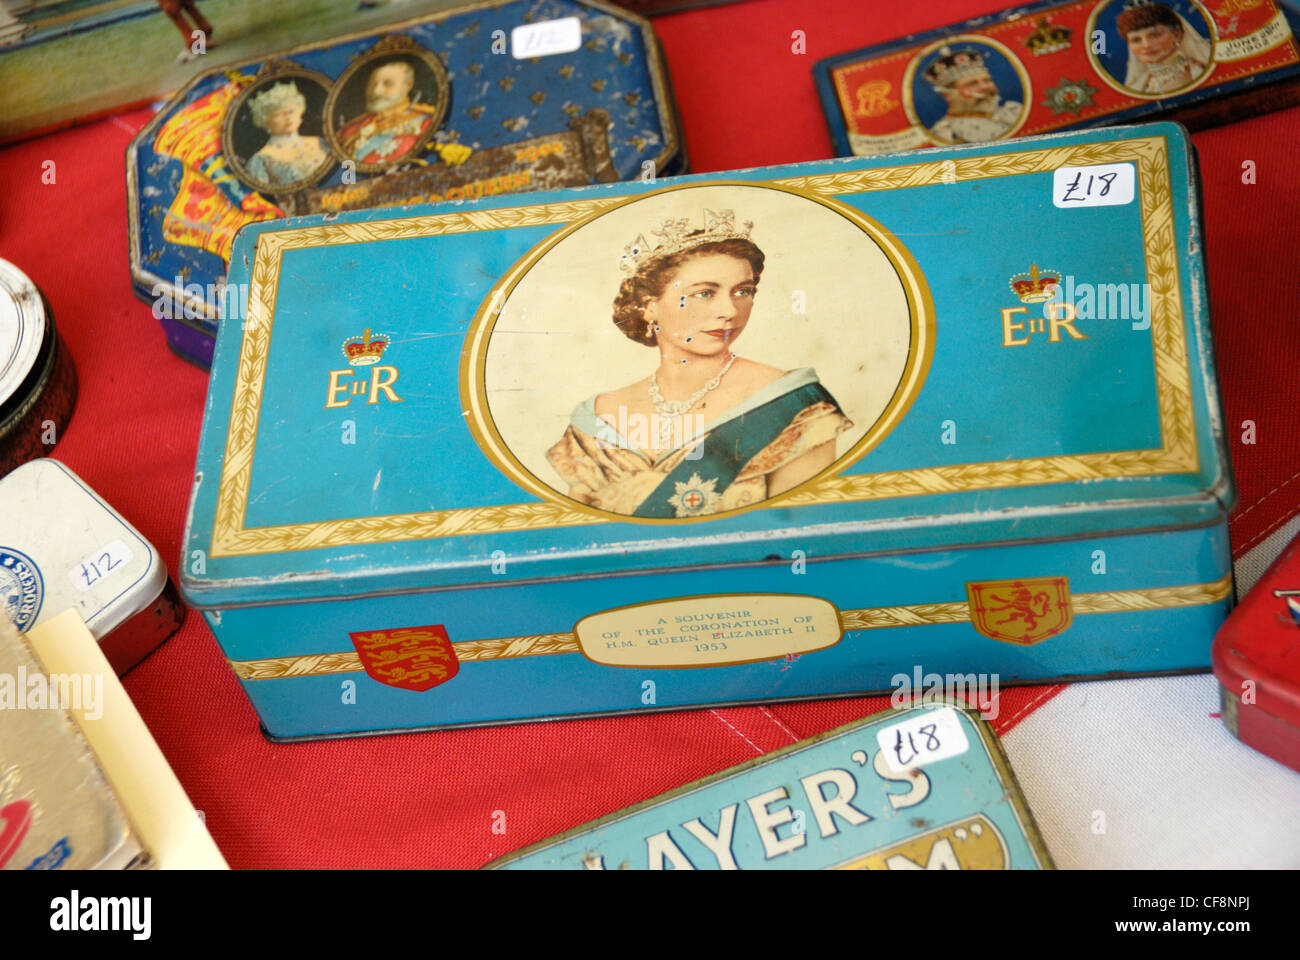 Tin boxes bearing images of British monarchs - Stock Image